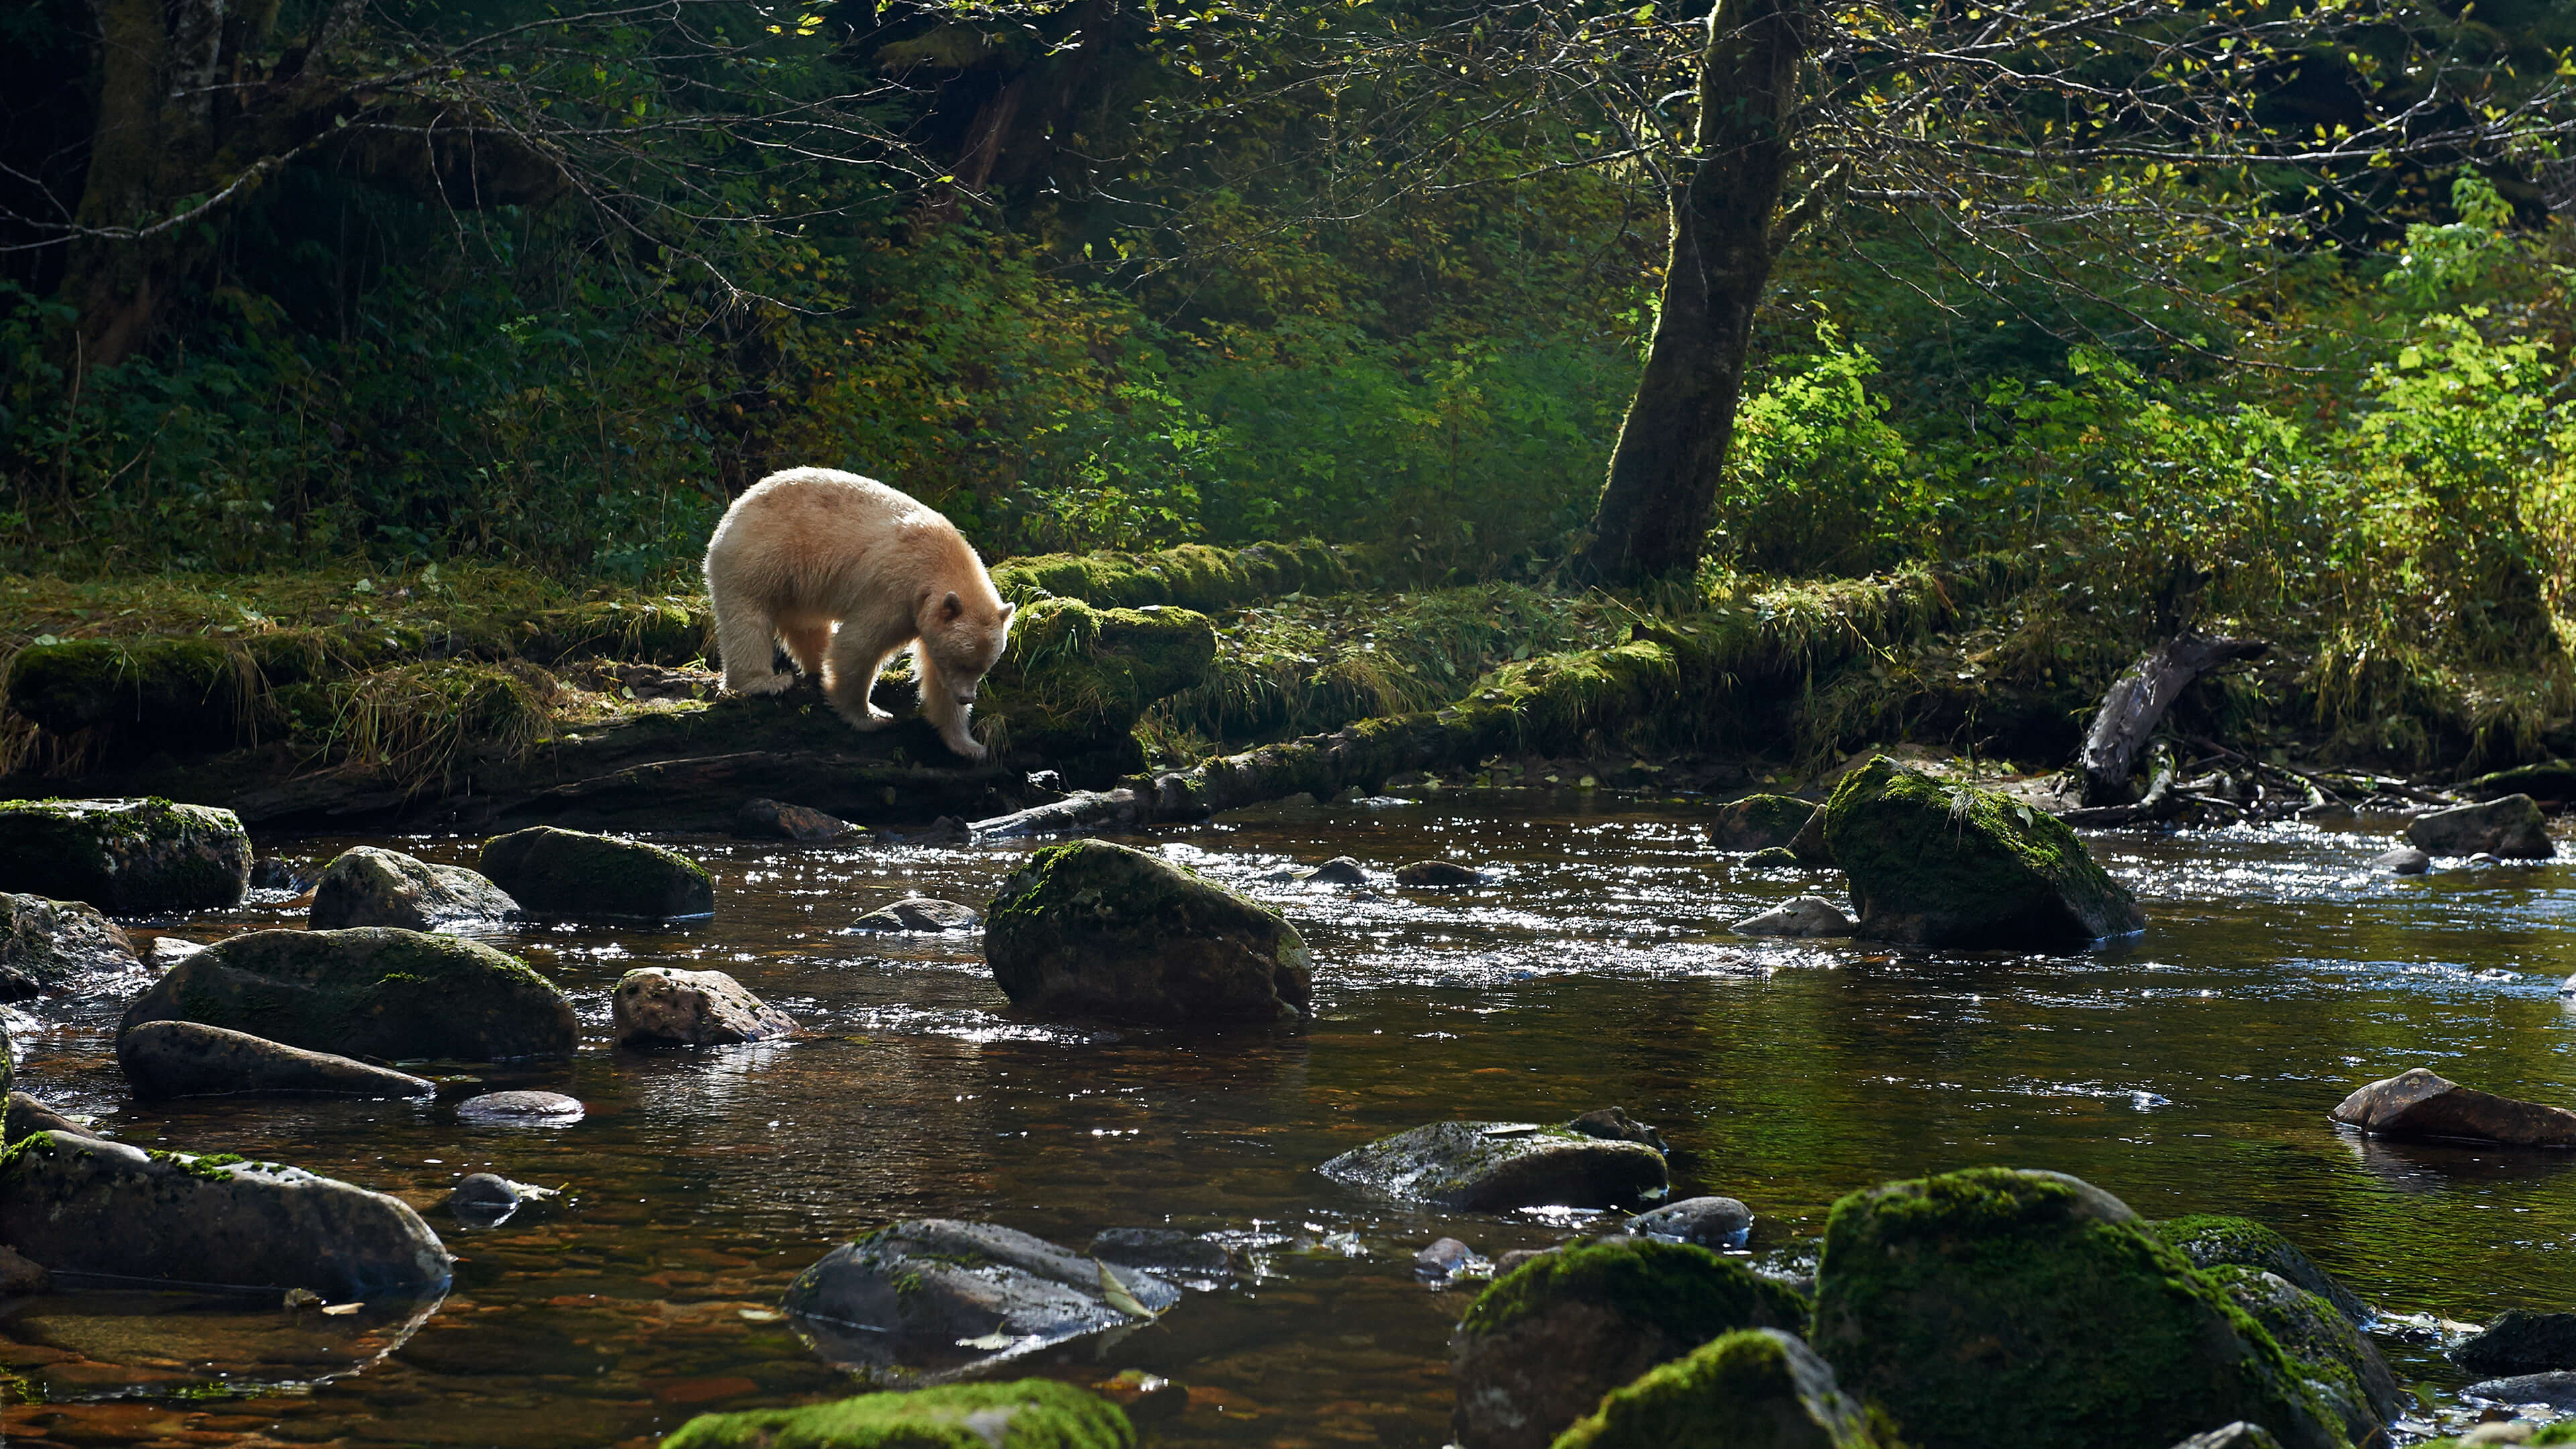 Spirit bear on Gribbell Island in the Great Bear Rainforest | Yuri Choufour